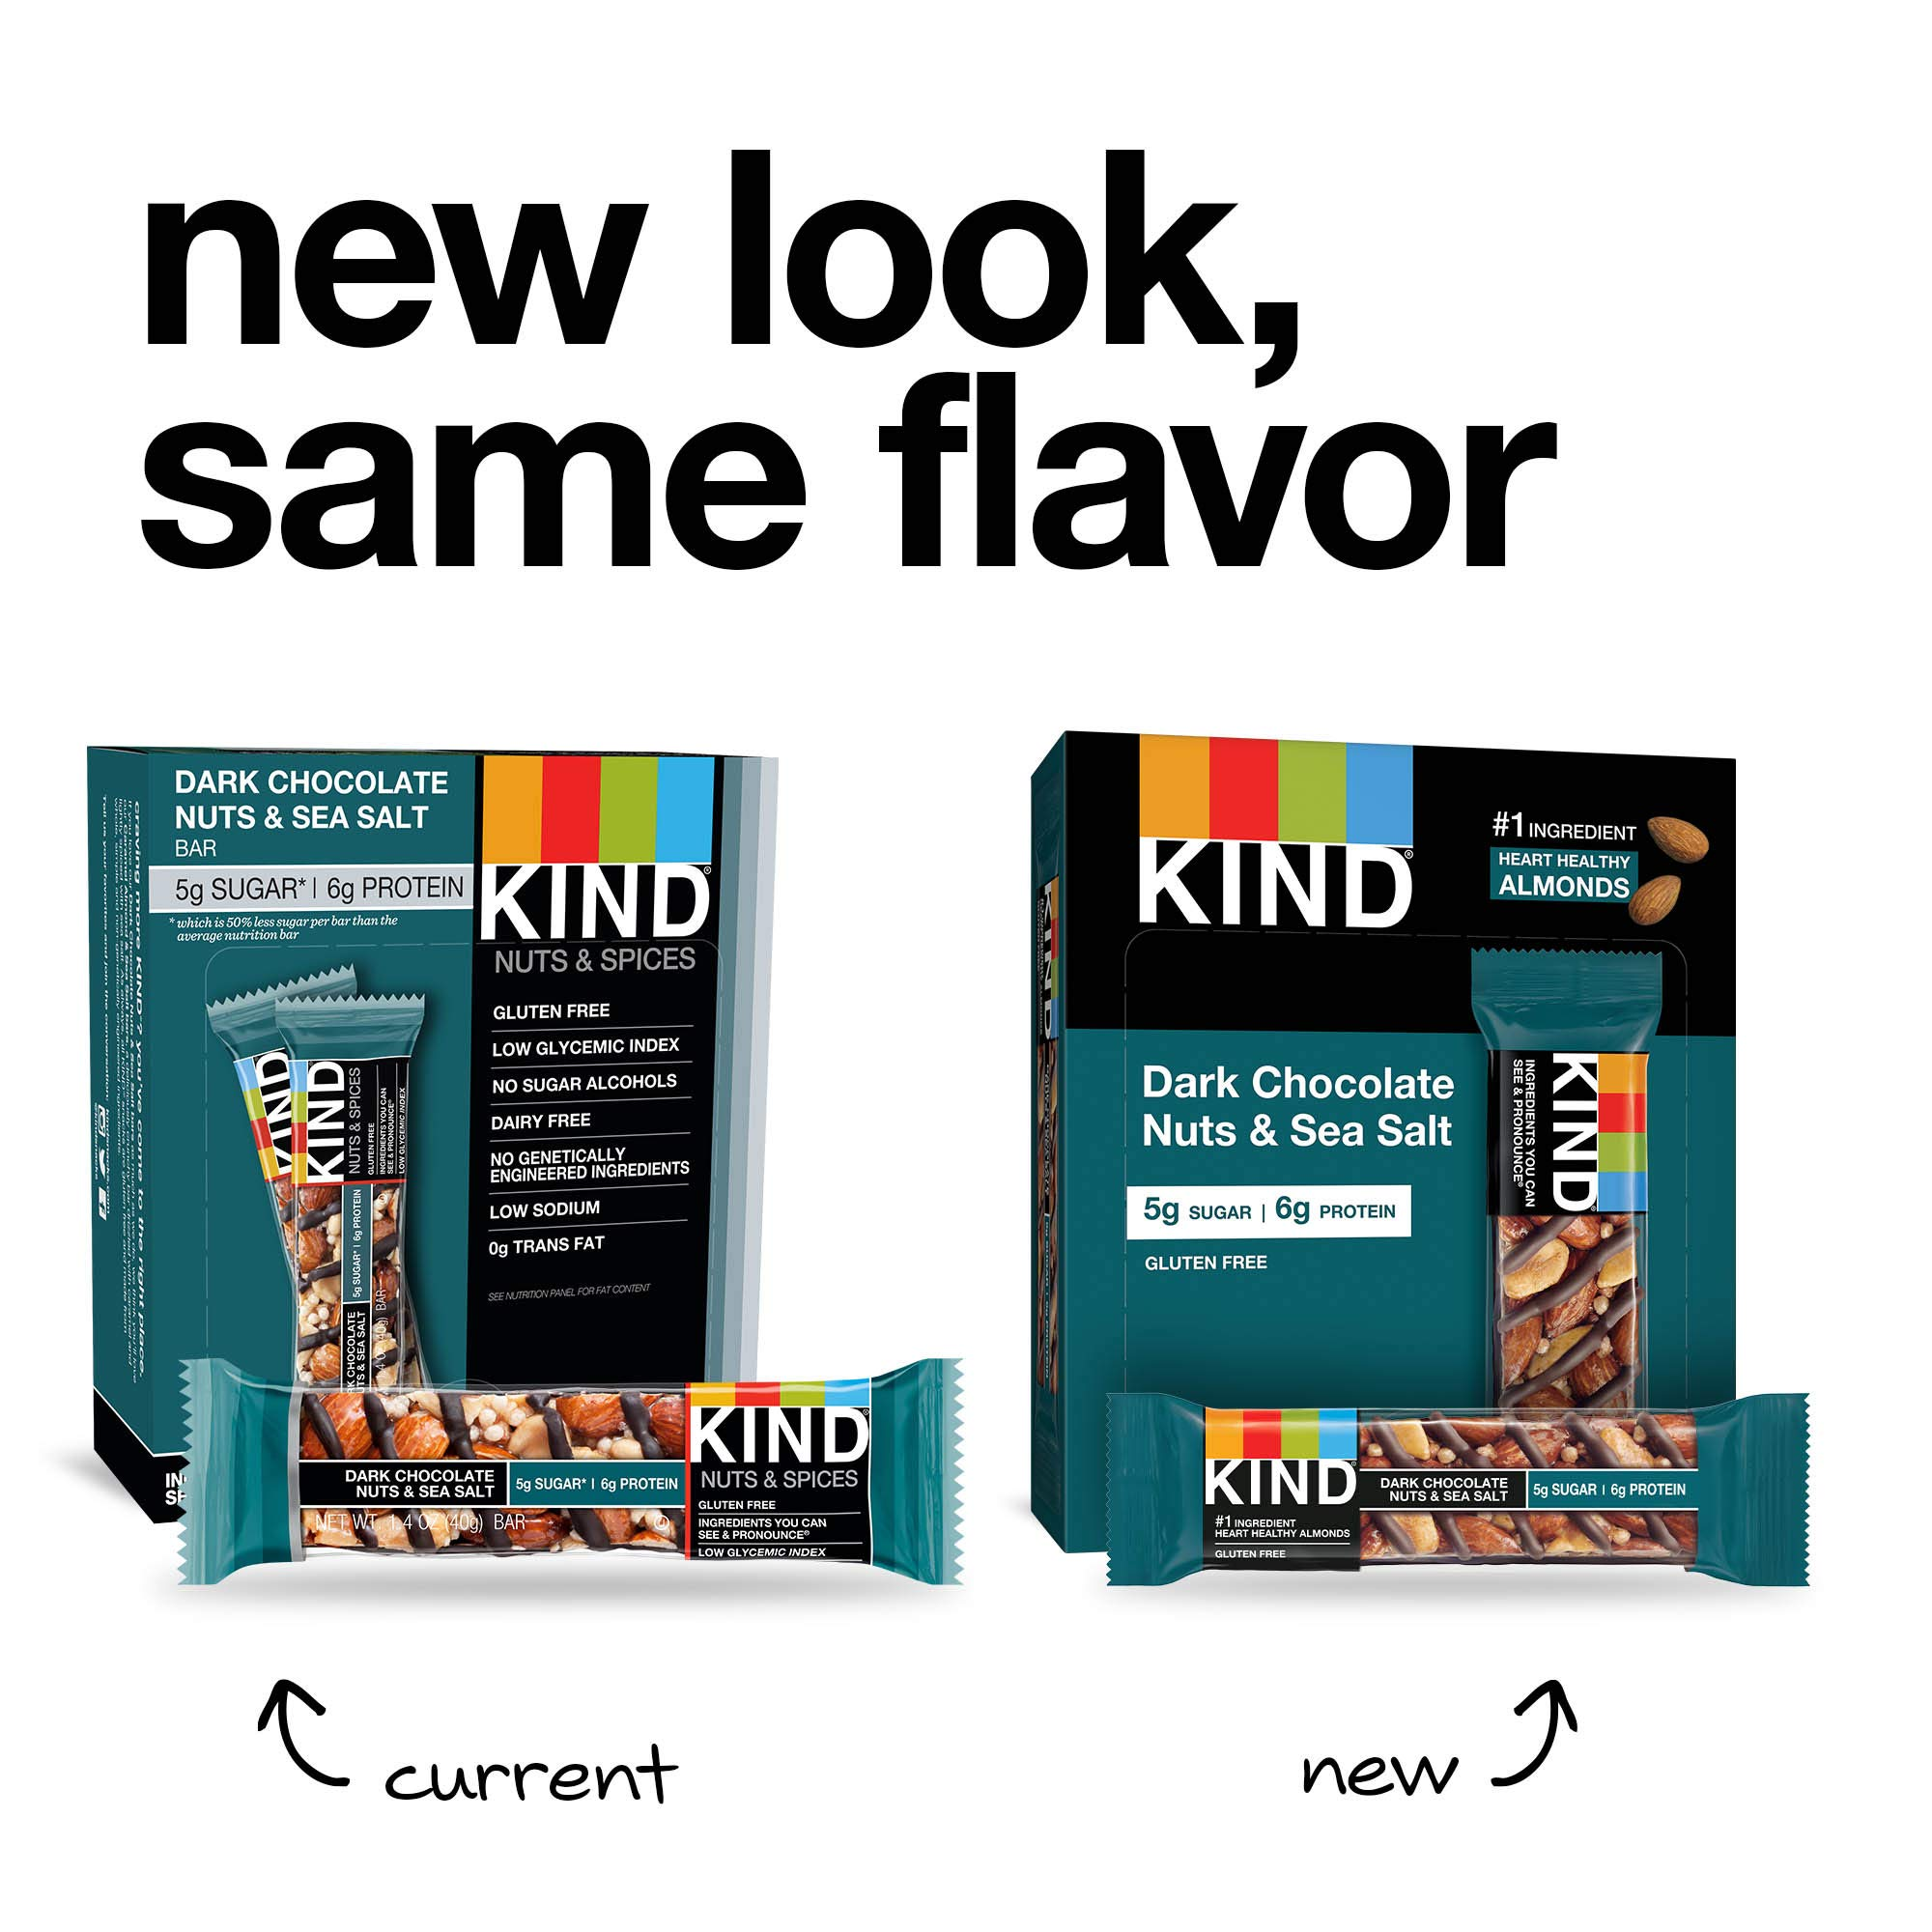 KIND Bars, Dark Chocolate Nuts & Sea Salt, Gluten Free, 1.4 Ounce Bars, 24 Count by KIND (Image #4)